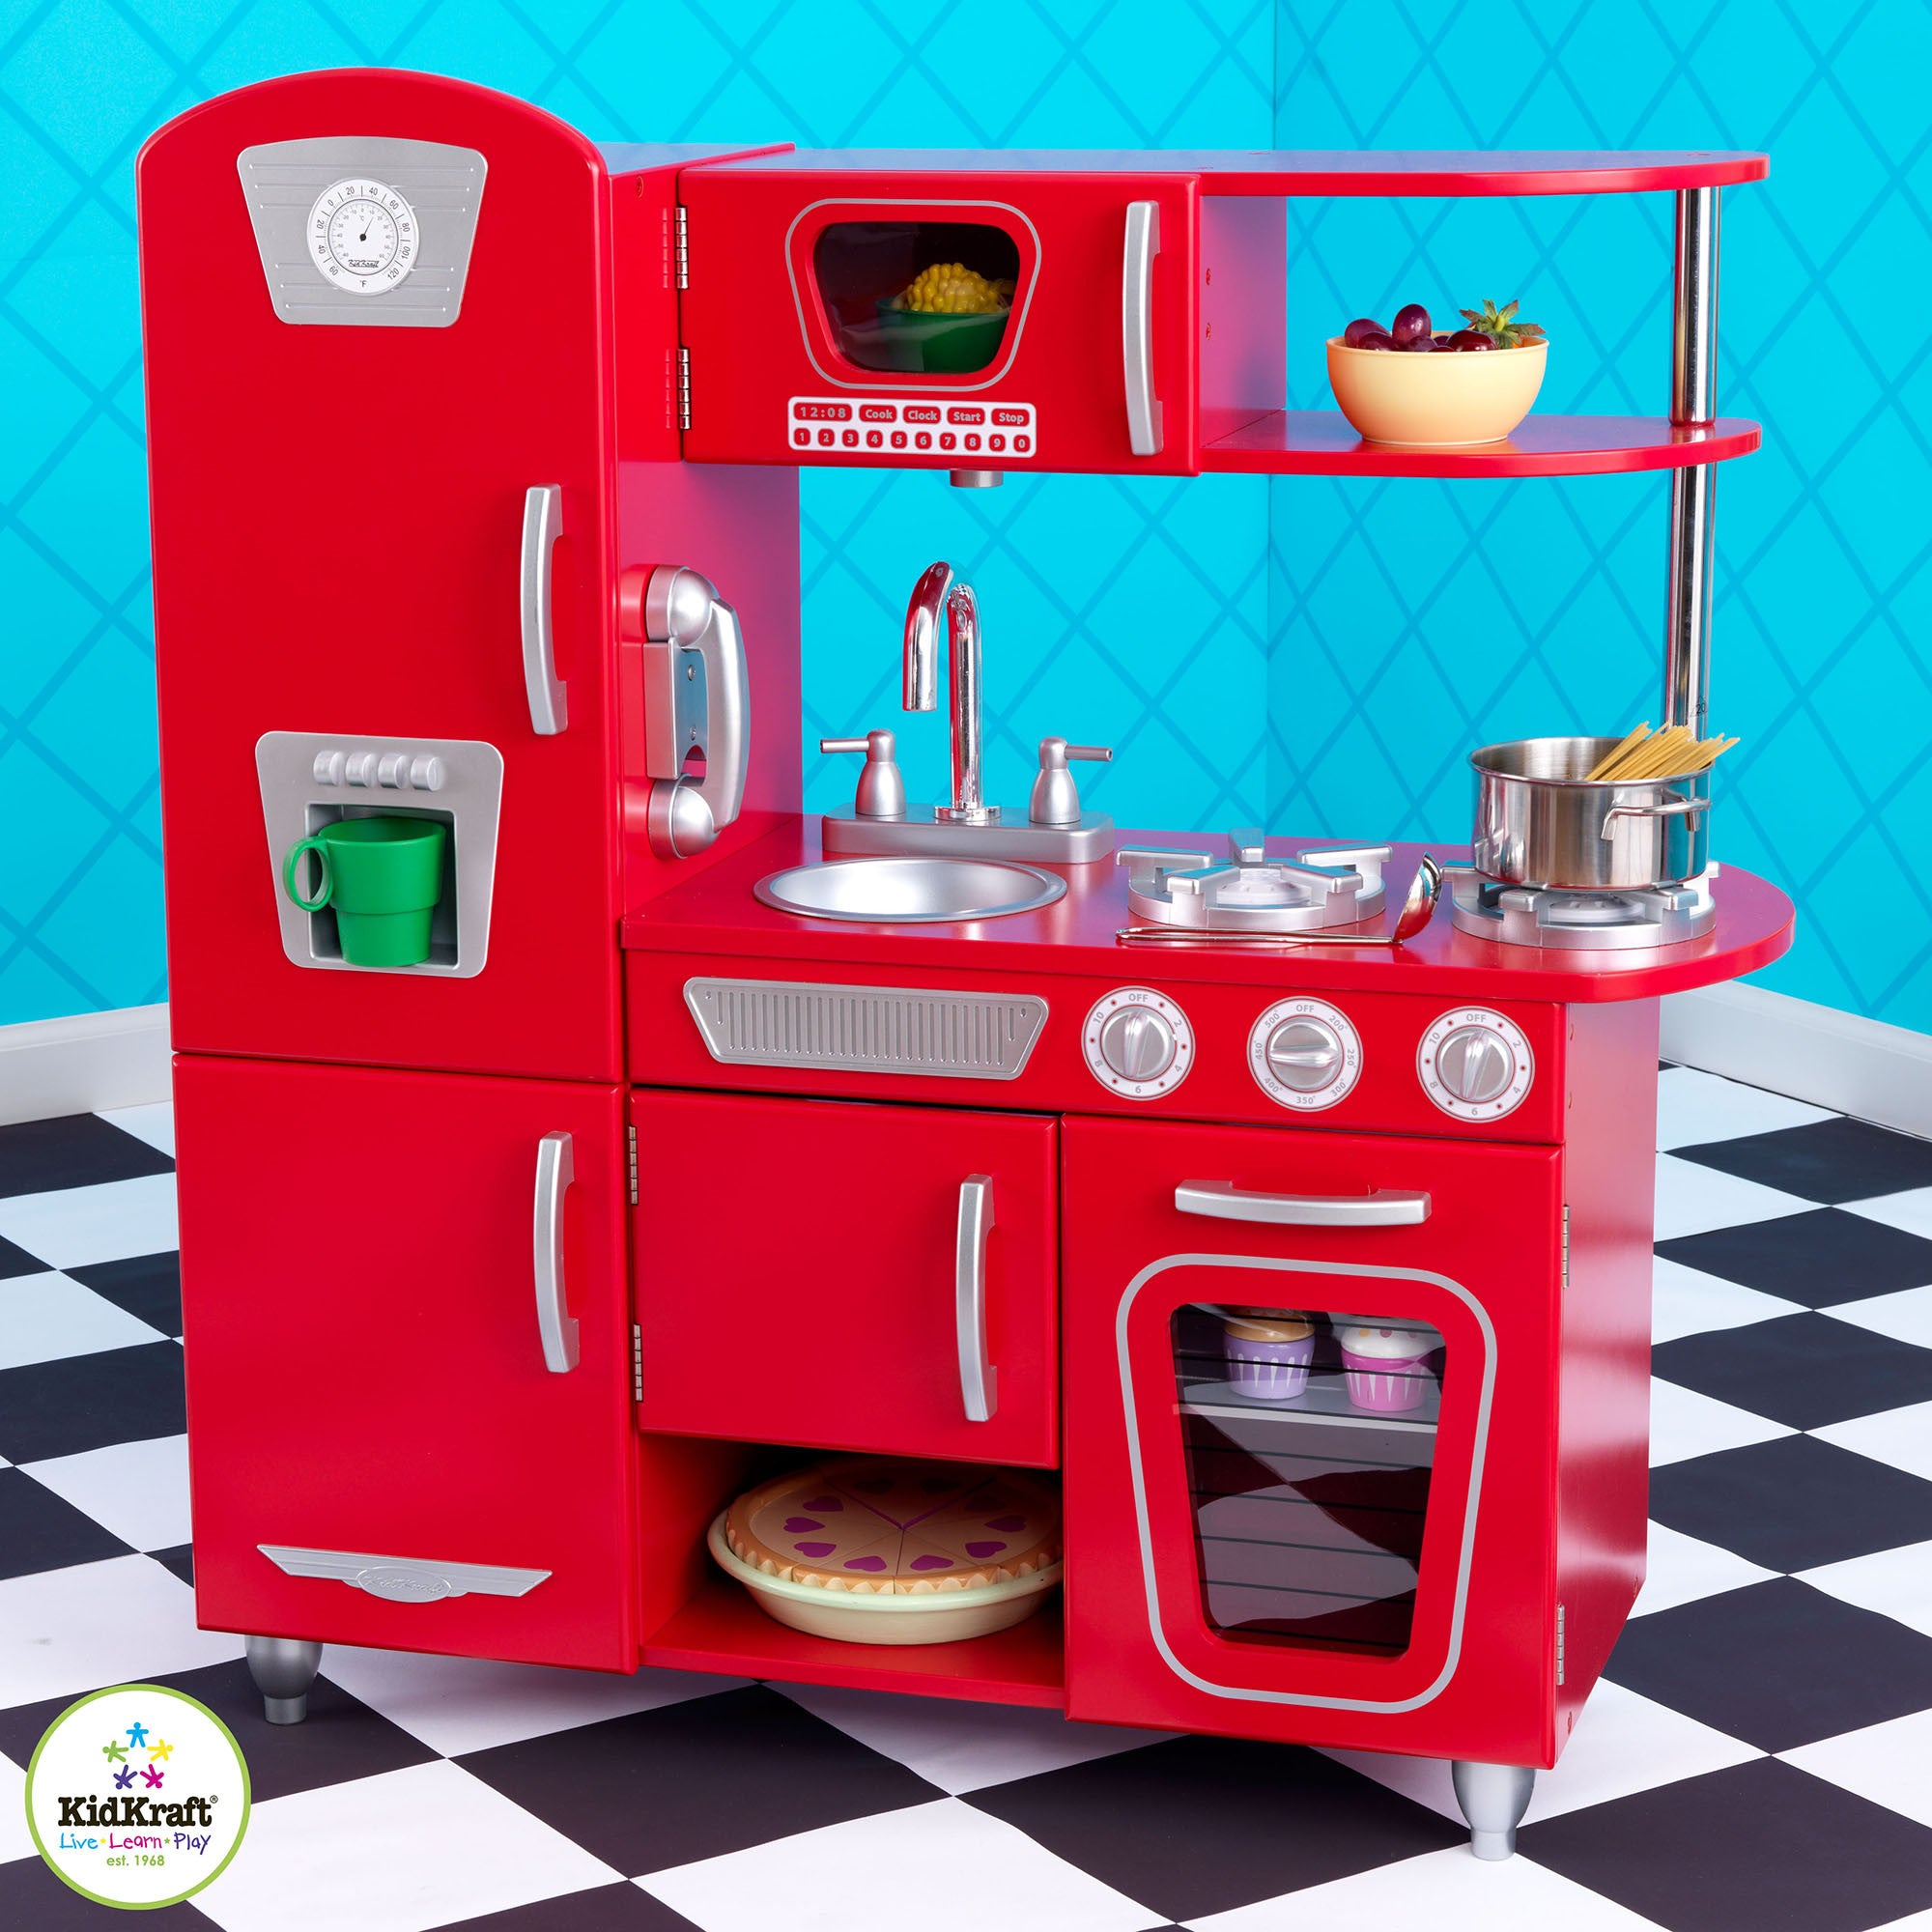 Kidkraft Retro Kitchen kidkraft retro kitchen. image of retro kitchen appliance colors